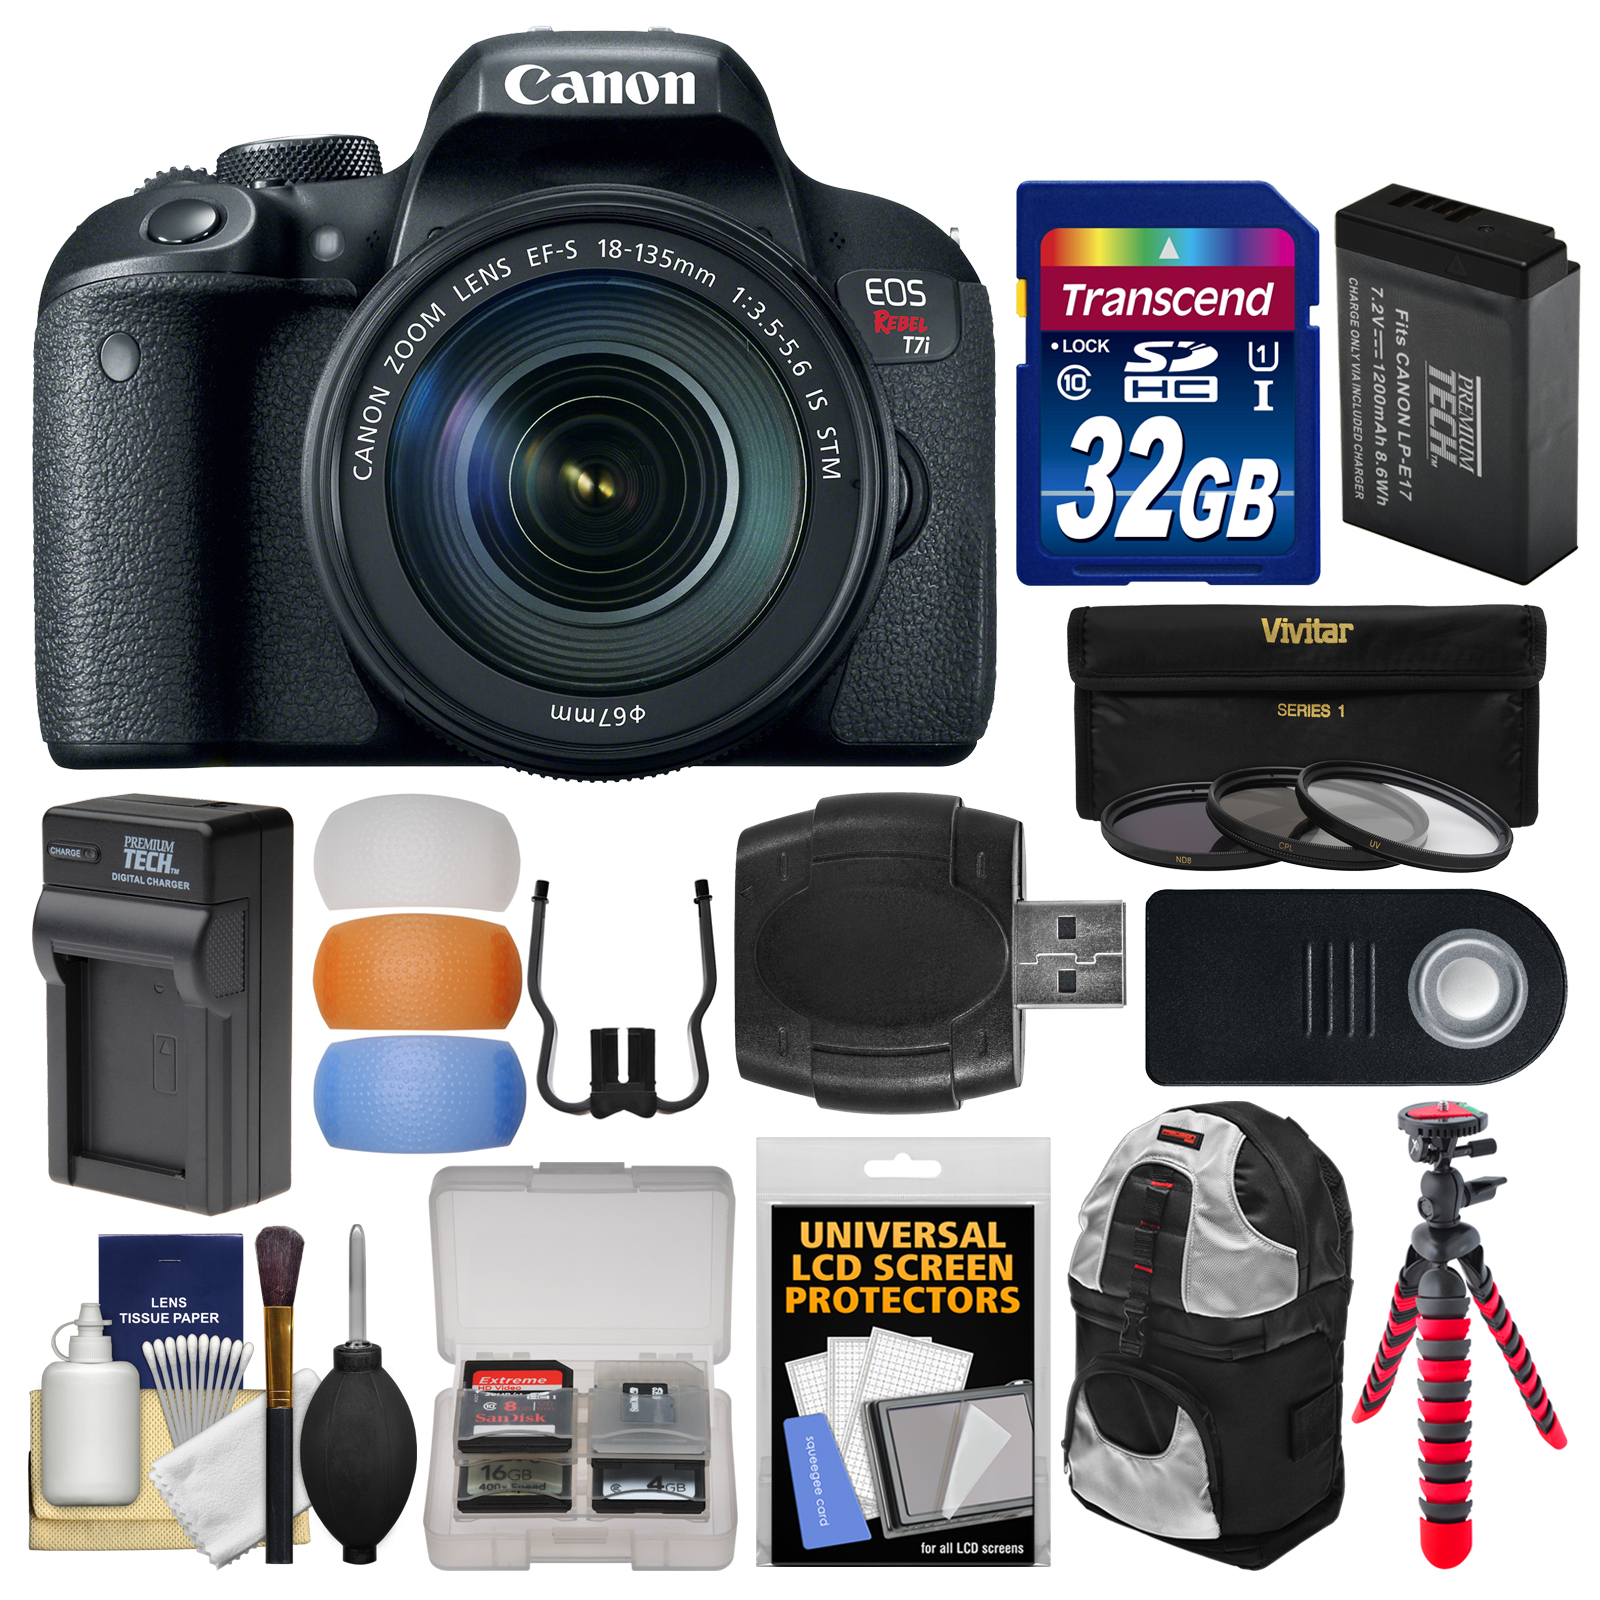 Canon EOS Rebel T7i Digital SLR Camera & EF-S 18-135mm IS STM Lens with 32GB Card + Backpack + Battery & Charger + Tripod + 3 Filters + Remote Kit